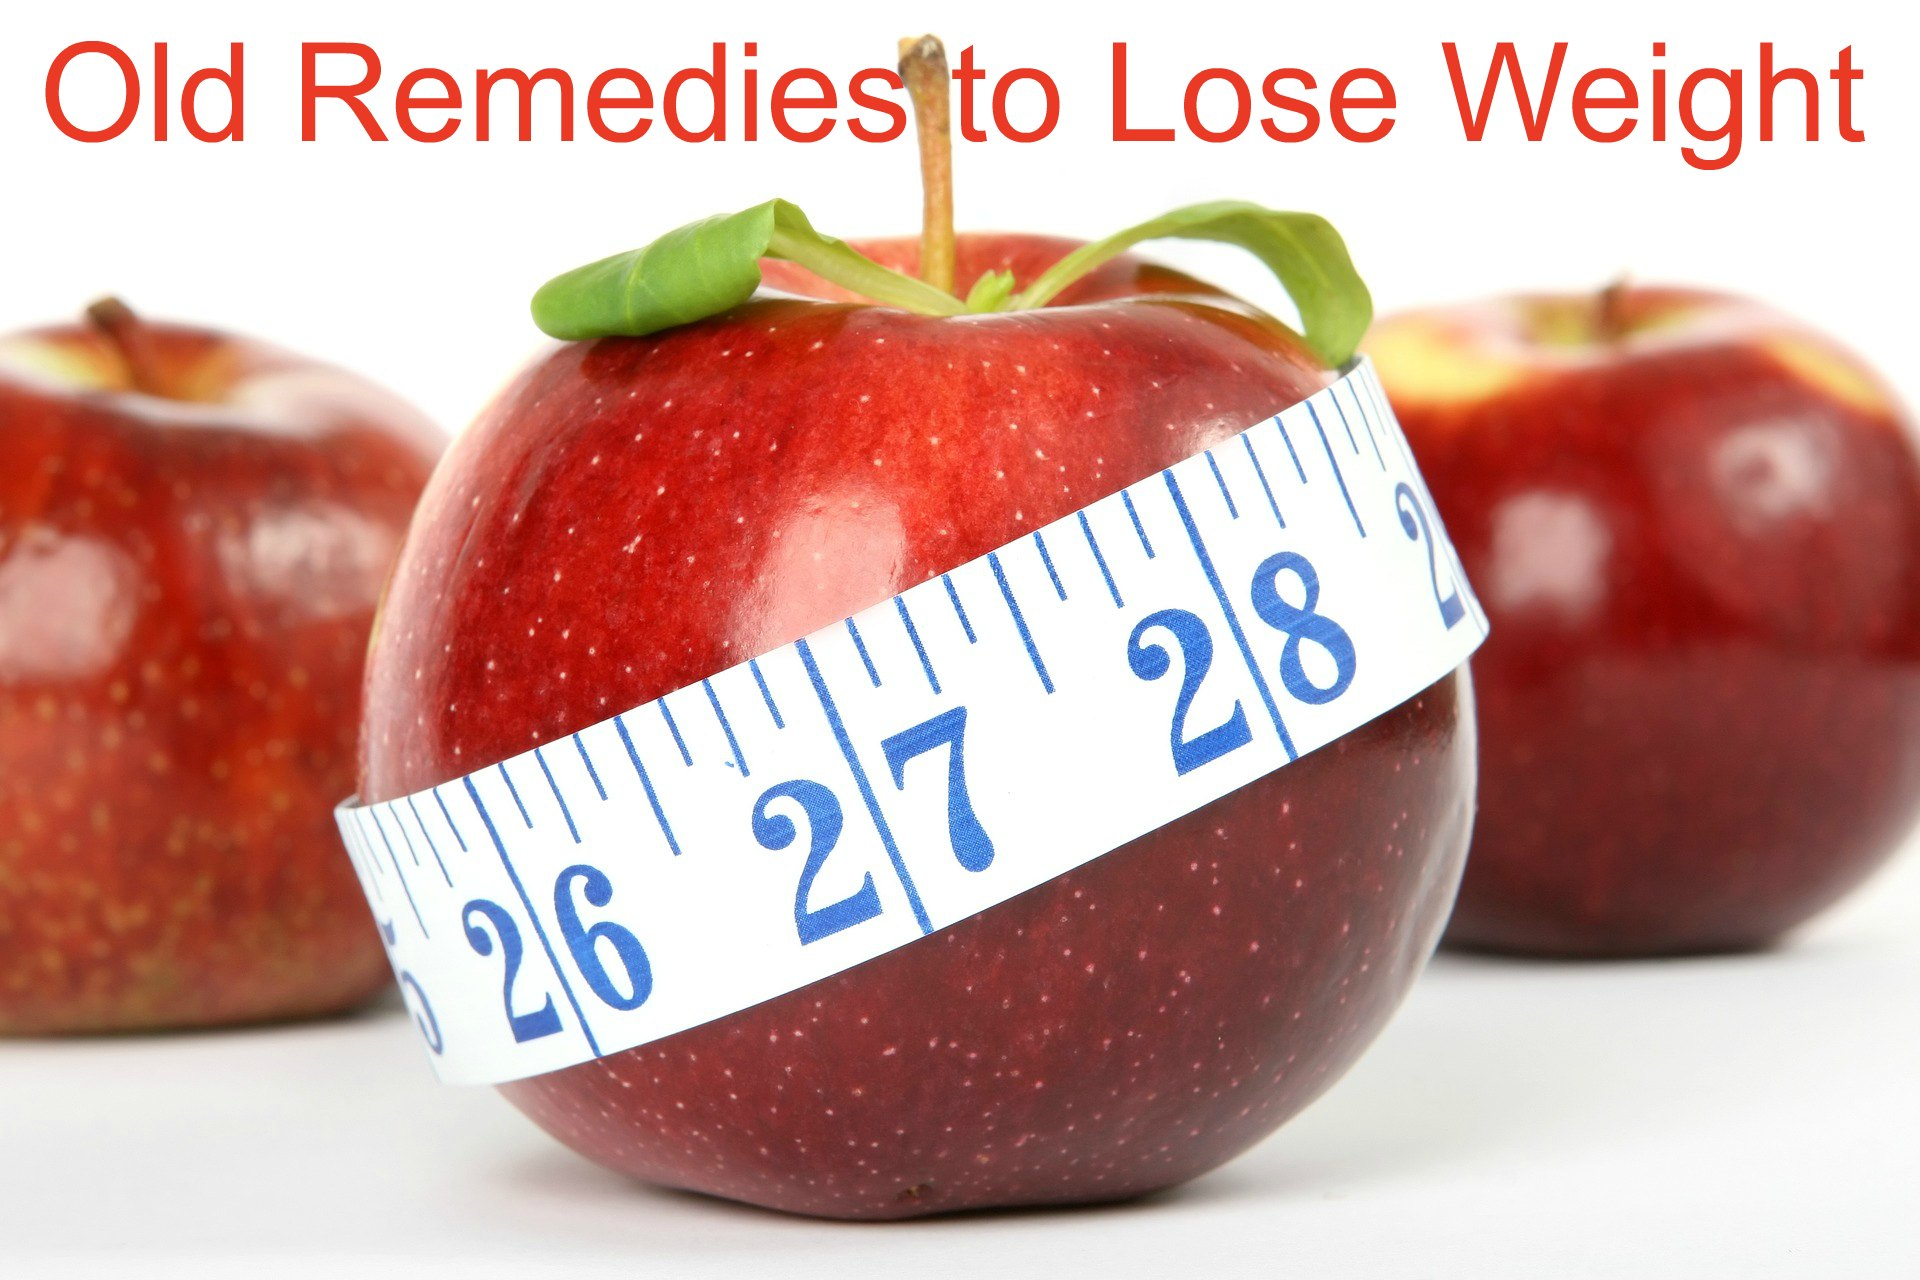 Old Remedies to Lose Weight